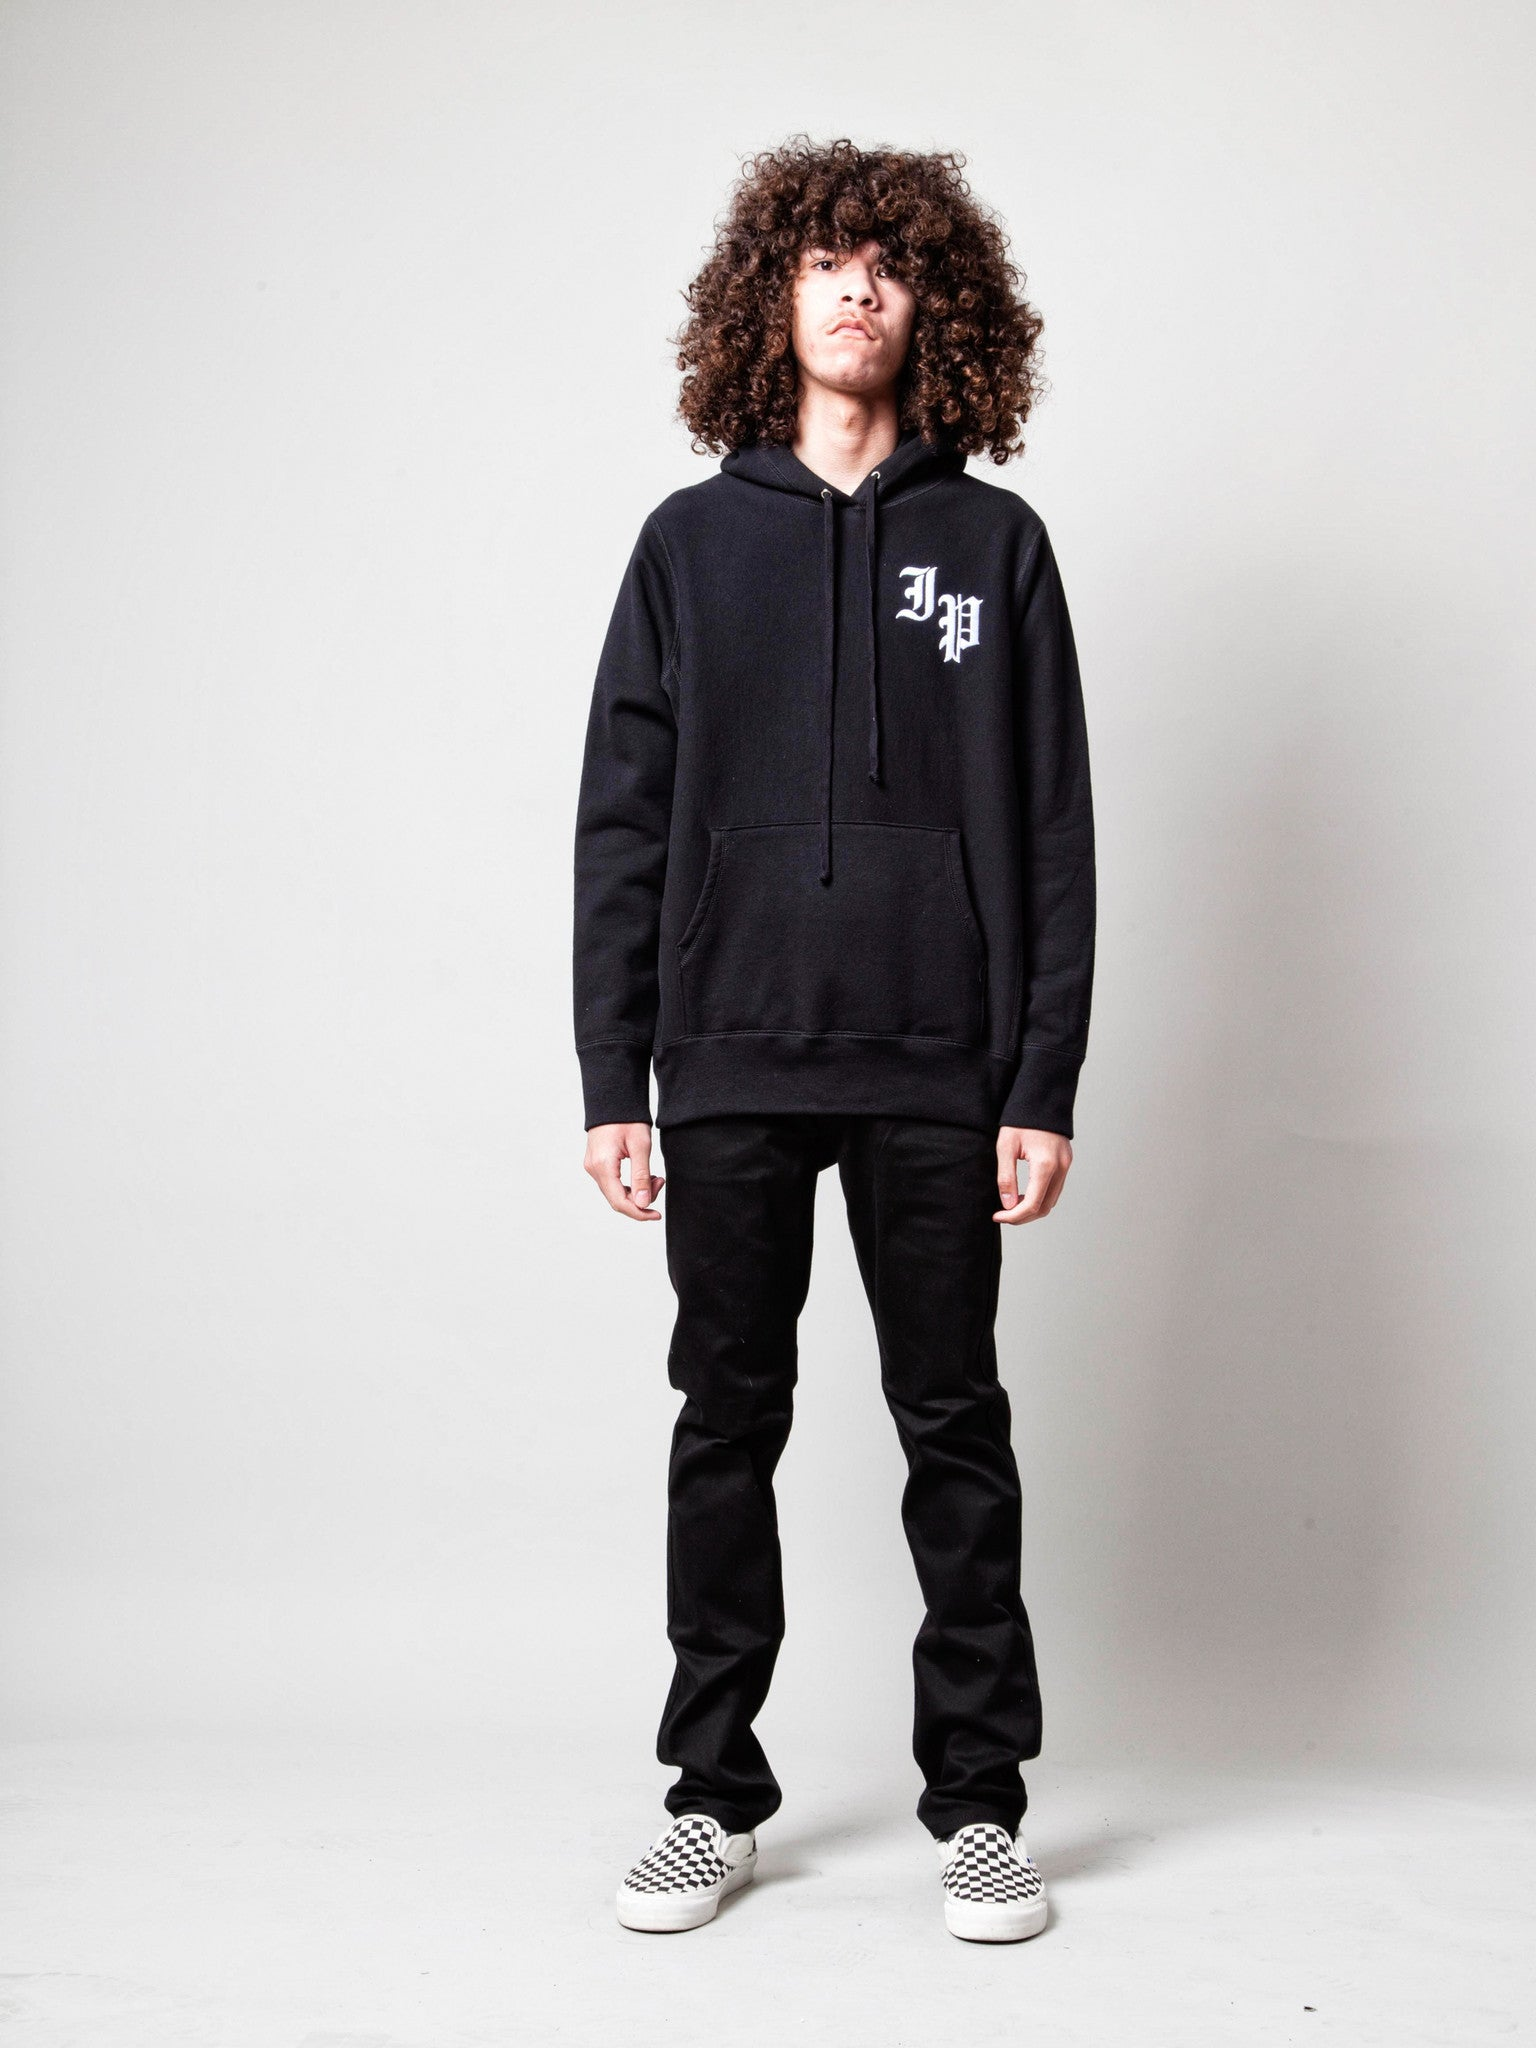 Black Slauson Pullover Hooded Sweatshirt 2